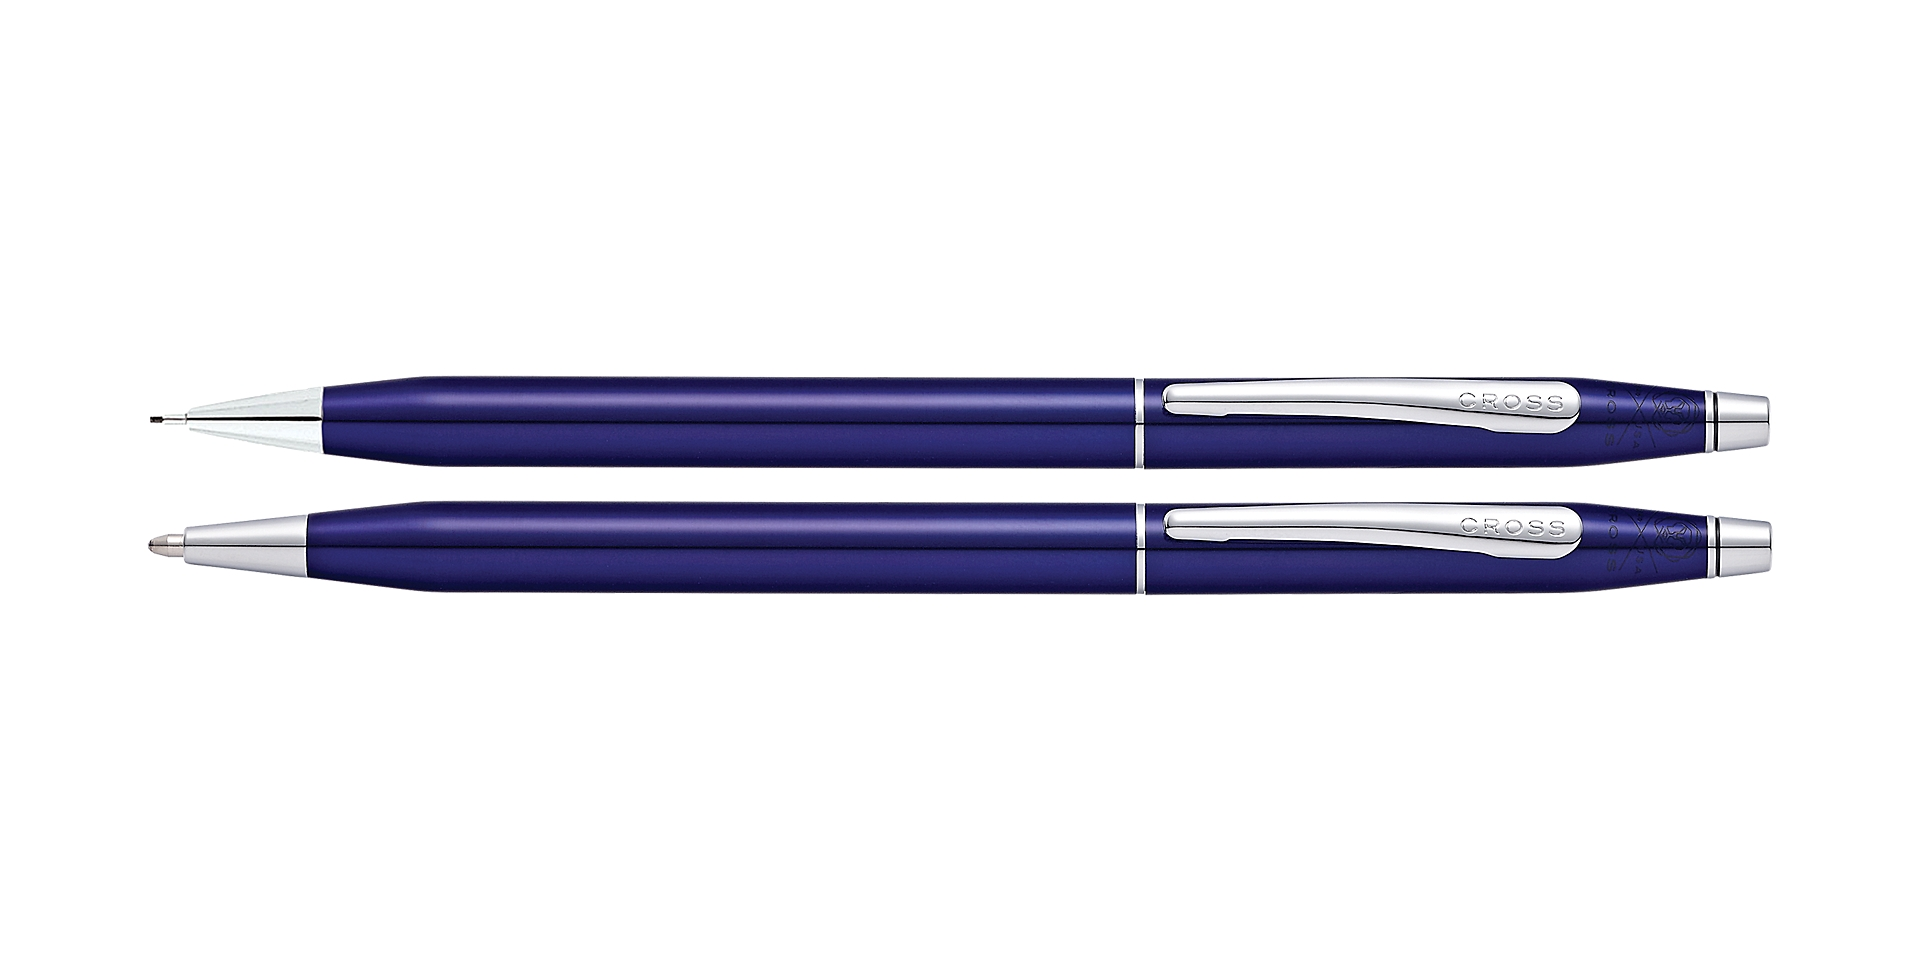 Cross Classic Century Translucent Blue Lacquer Ballpoint Pen and Pencil Set Picture